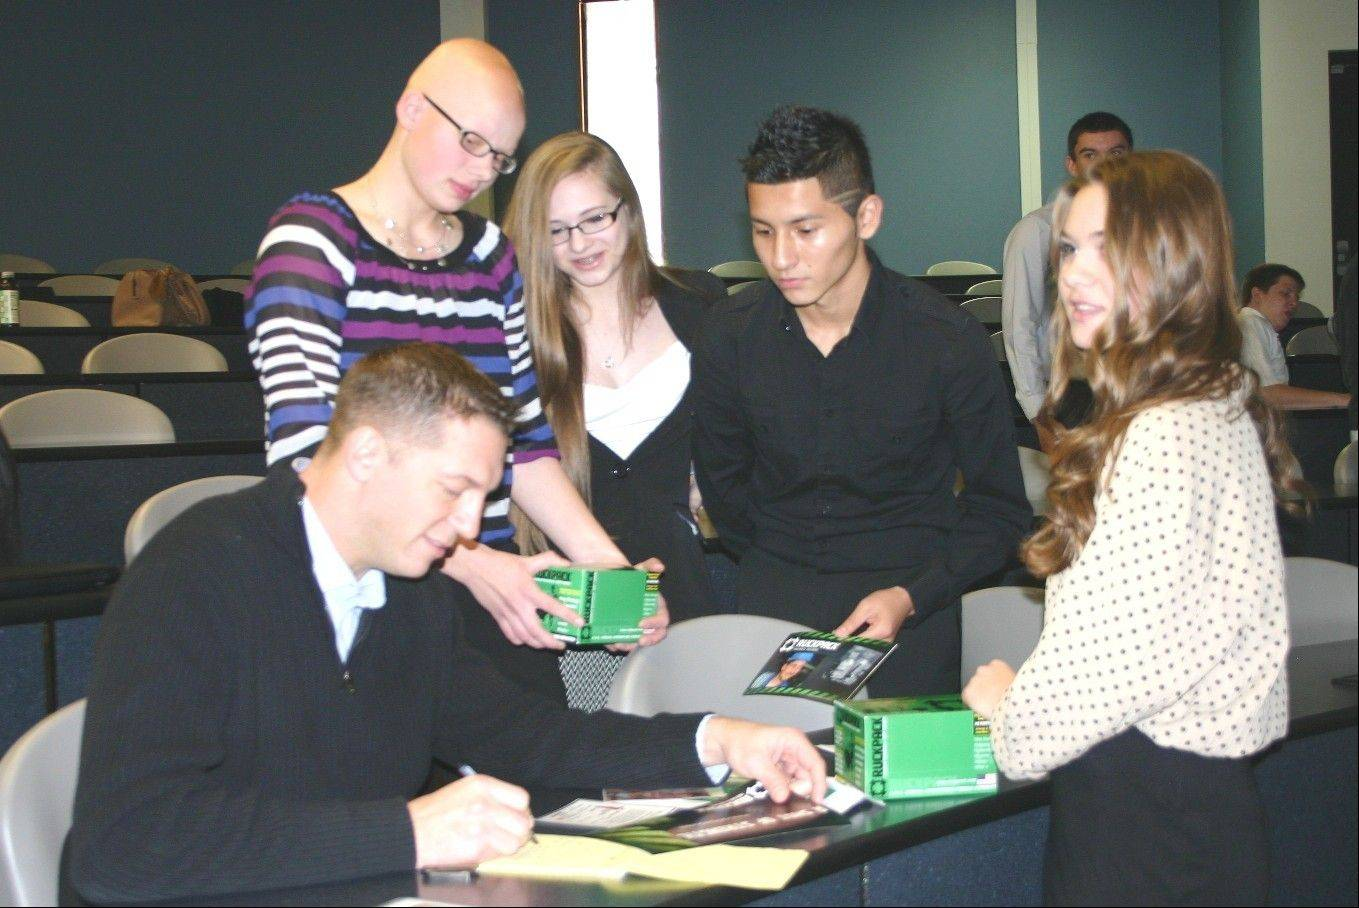 Rob Dyer, left, a Marine Corps veteran, entrepreneur and creator of the nutritional drink RuckPack, takes notes on ideas from Lake Park High School marketing students Sam Cummings, Sara Bobek, Mauricio Cardona and Cassidy McGinn. The students pitched marketing ideas for RuckPack to Dyer for their semester-end project.